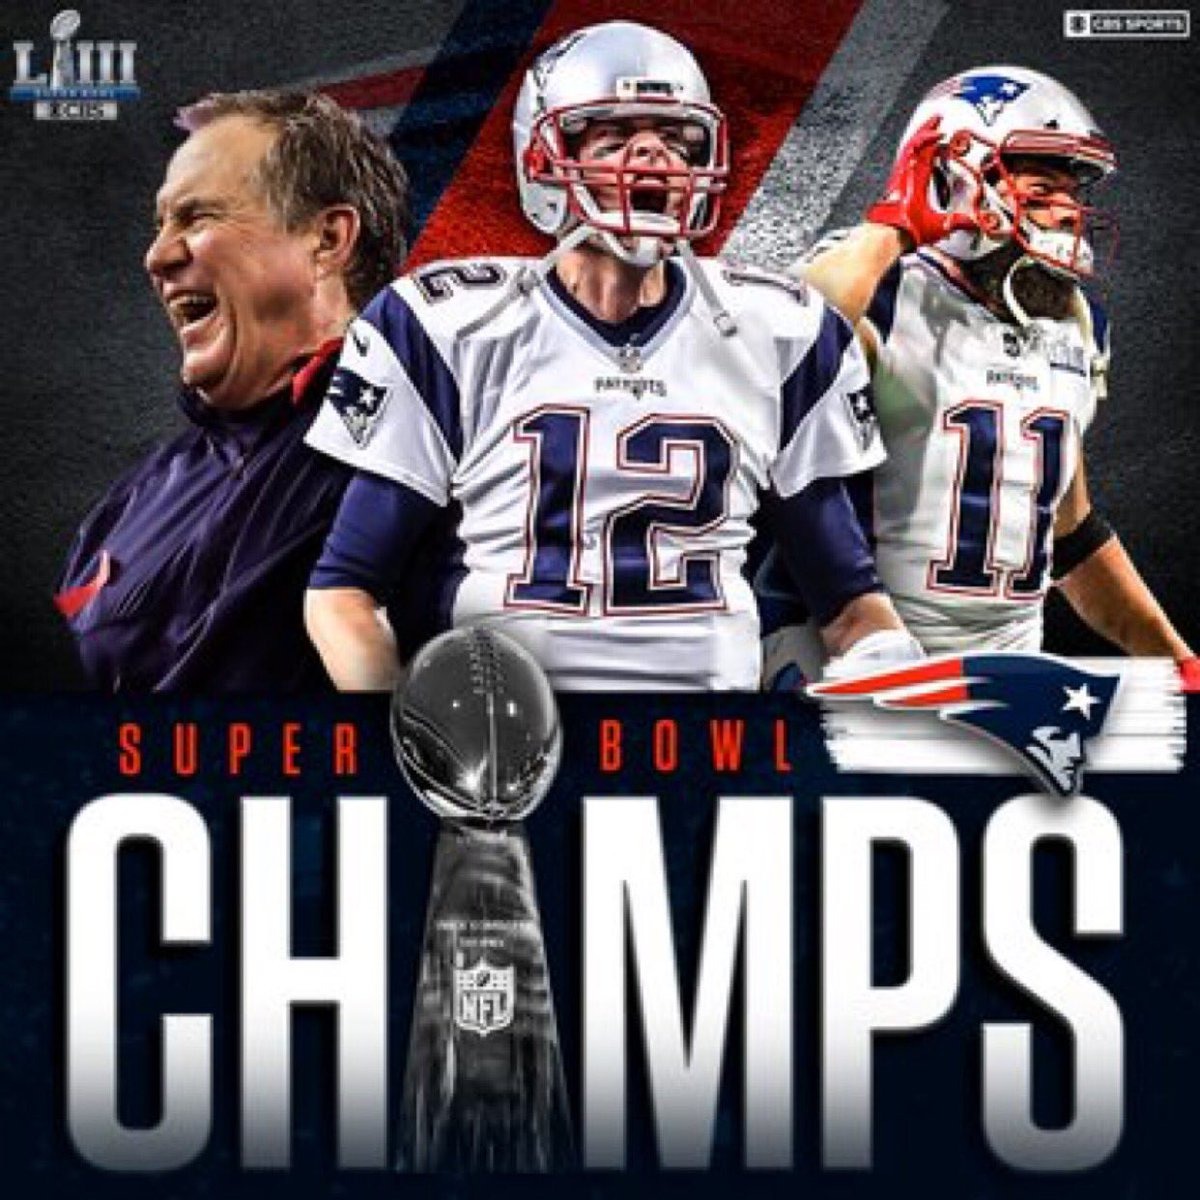 Good Morning loves . Waking up as #SuperBowlChamps on this final #VictoryMonday of the season. This will never, ever get old! #LetsGo #6Rings #SBLlll #cityofchampions <br>http://pic.twitter.com/IuDxt1sWFT